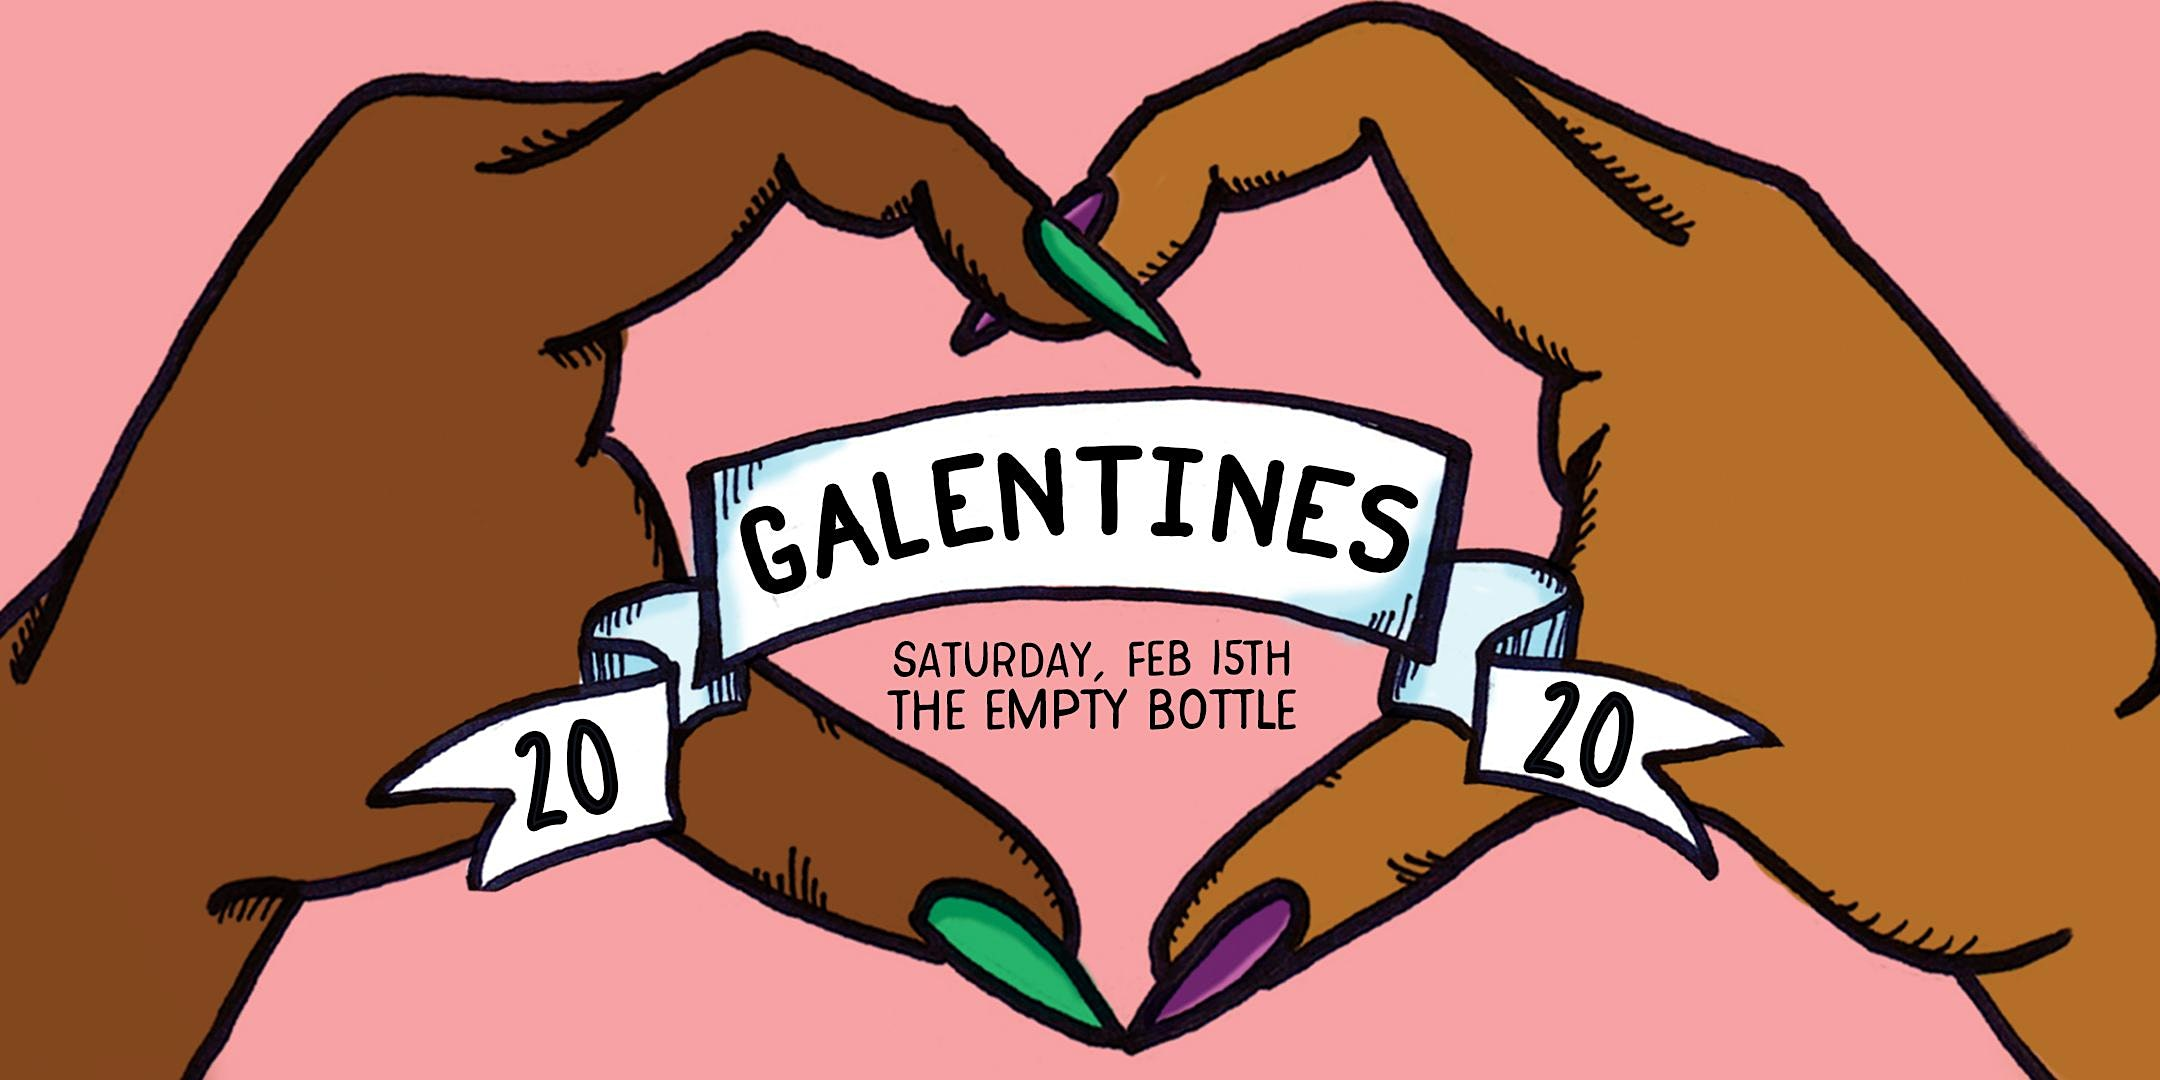 Feminist Happy Hour Galentine's BFF Pop Up Party